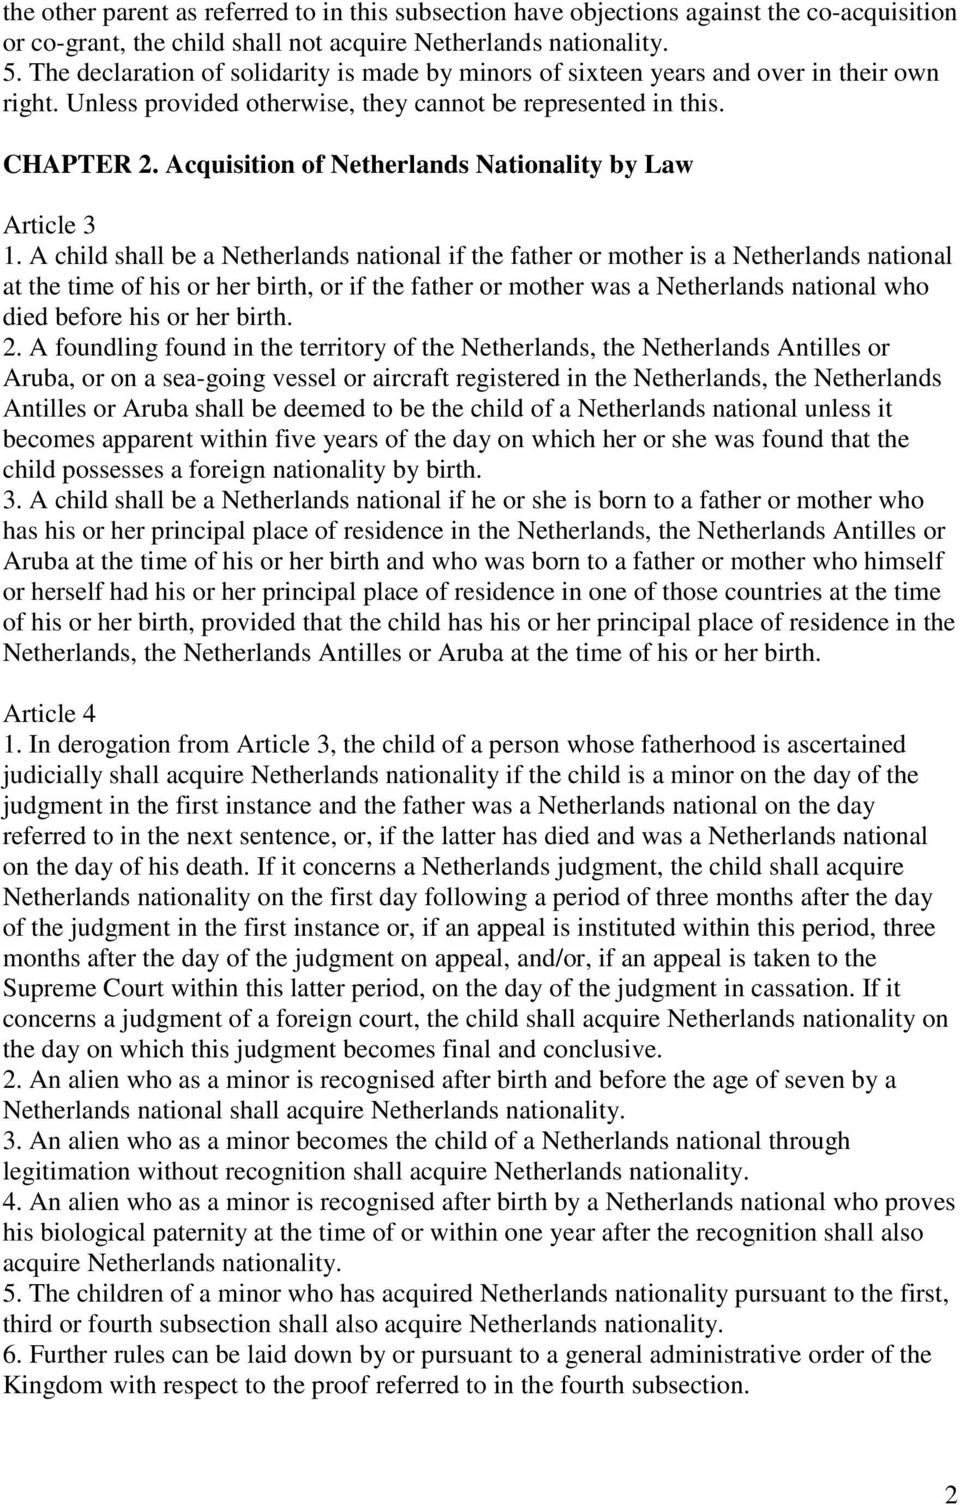 Acquisition of Netherlands Nationality by Law Article 3 1.